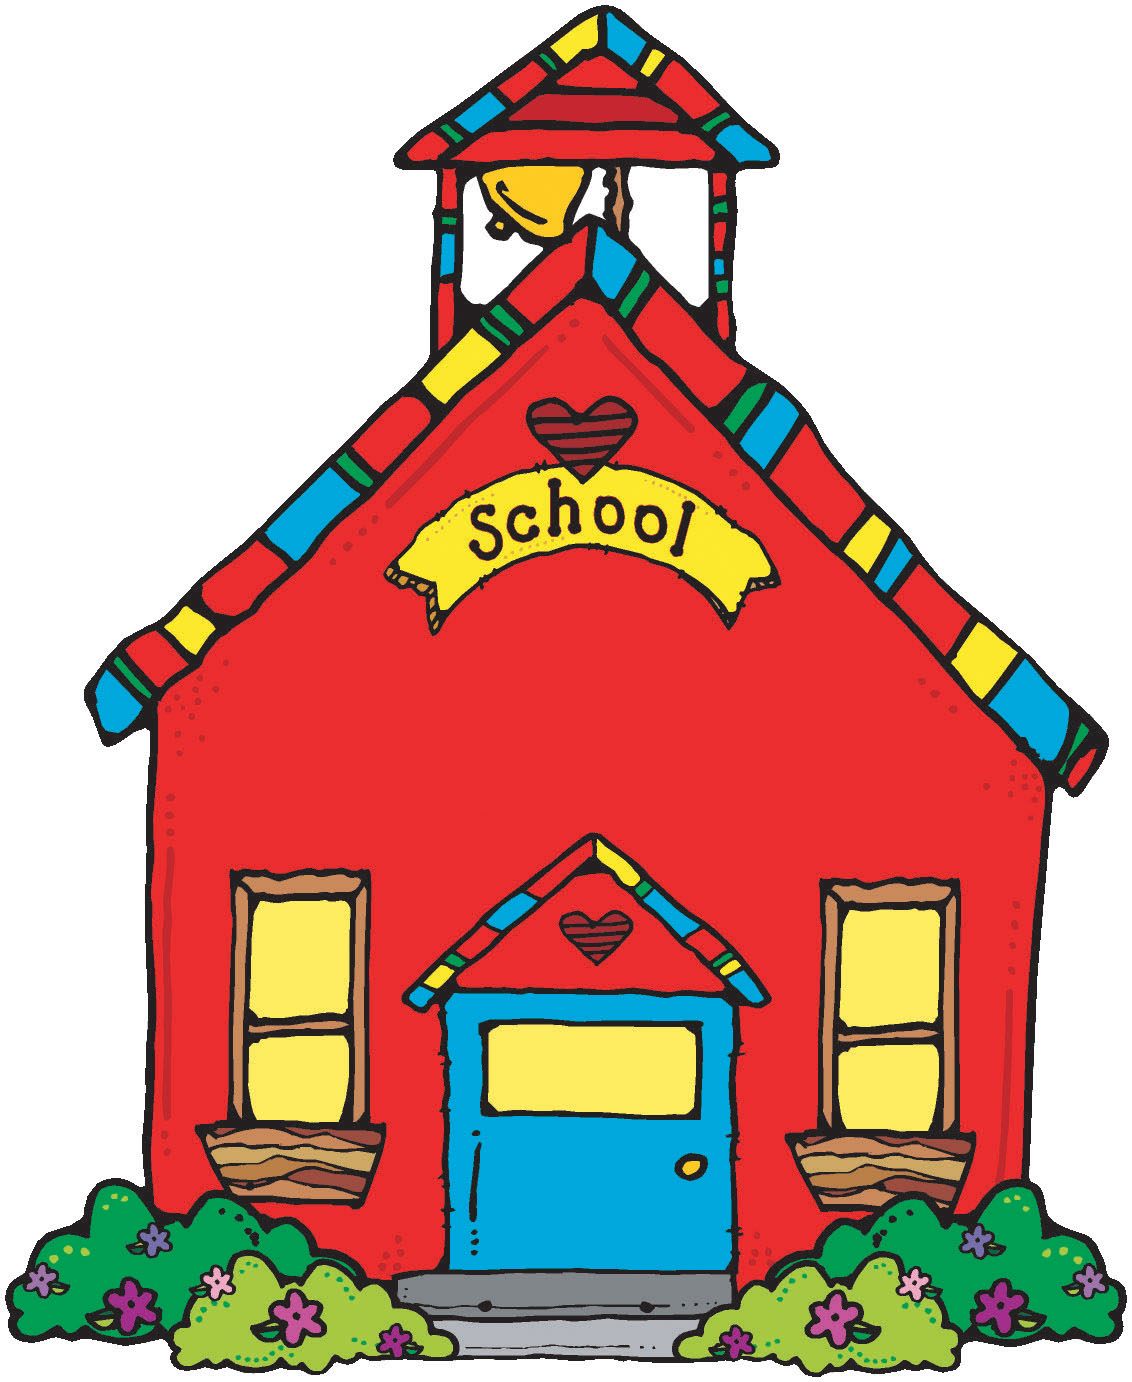 23 Schoolhouse Clip Art Free Cliparts Th-23 Schoolhouse Clip Art Free Cliparts That You Can Download To You-0